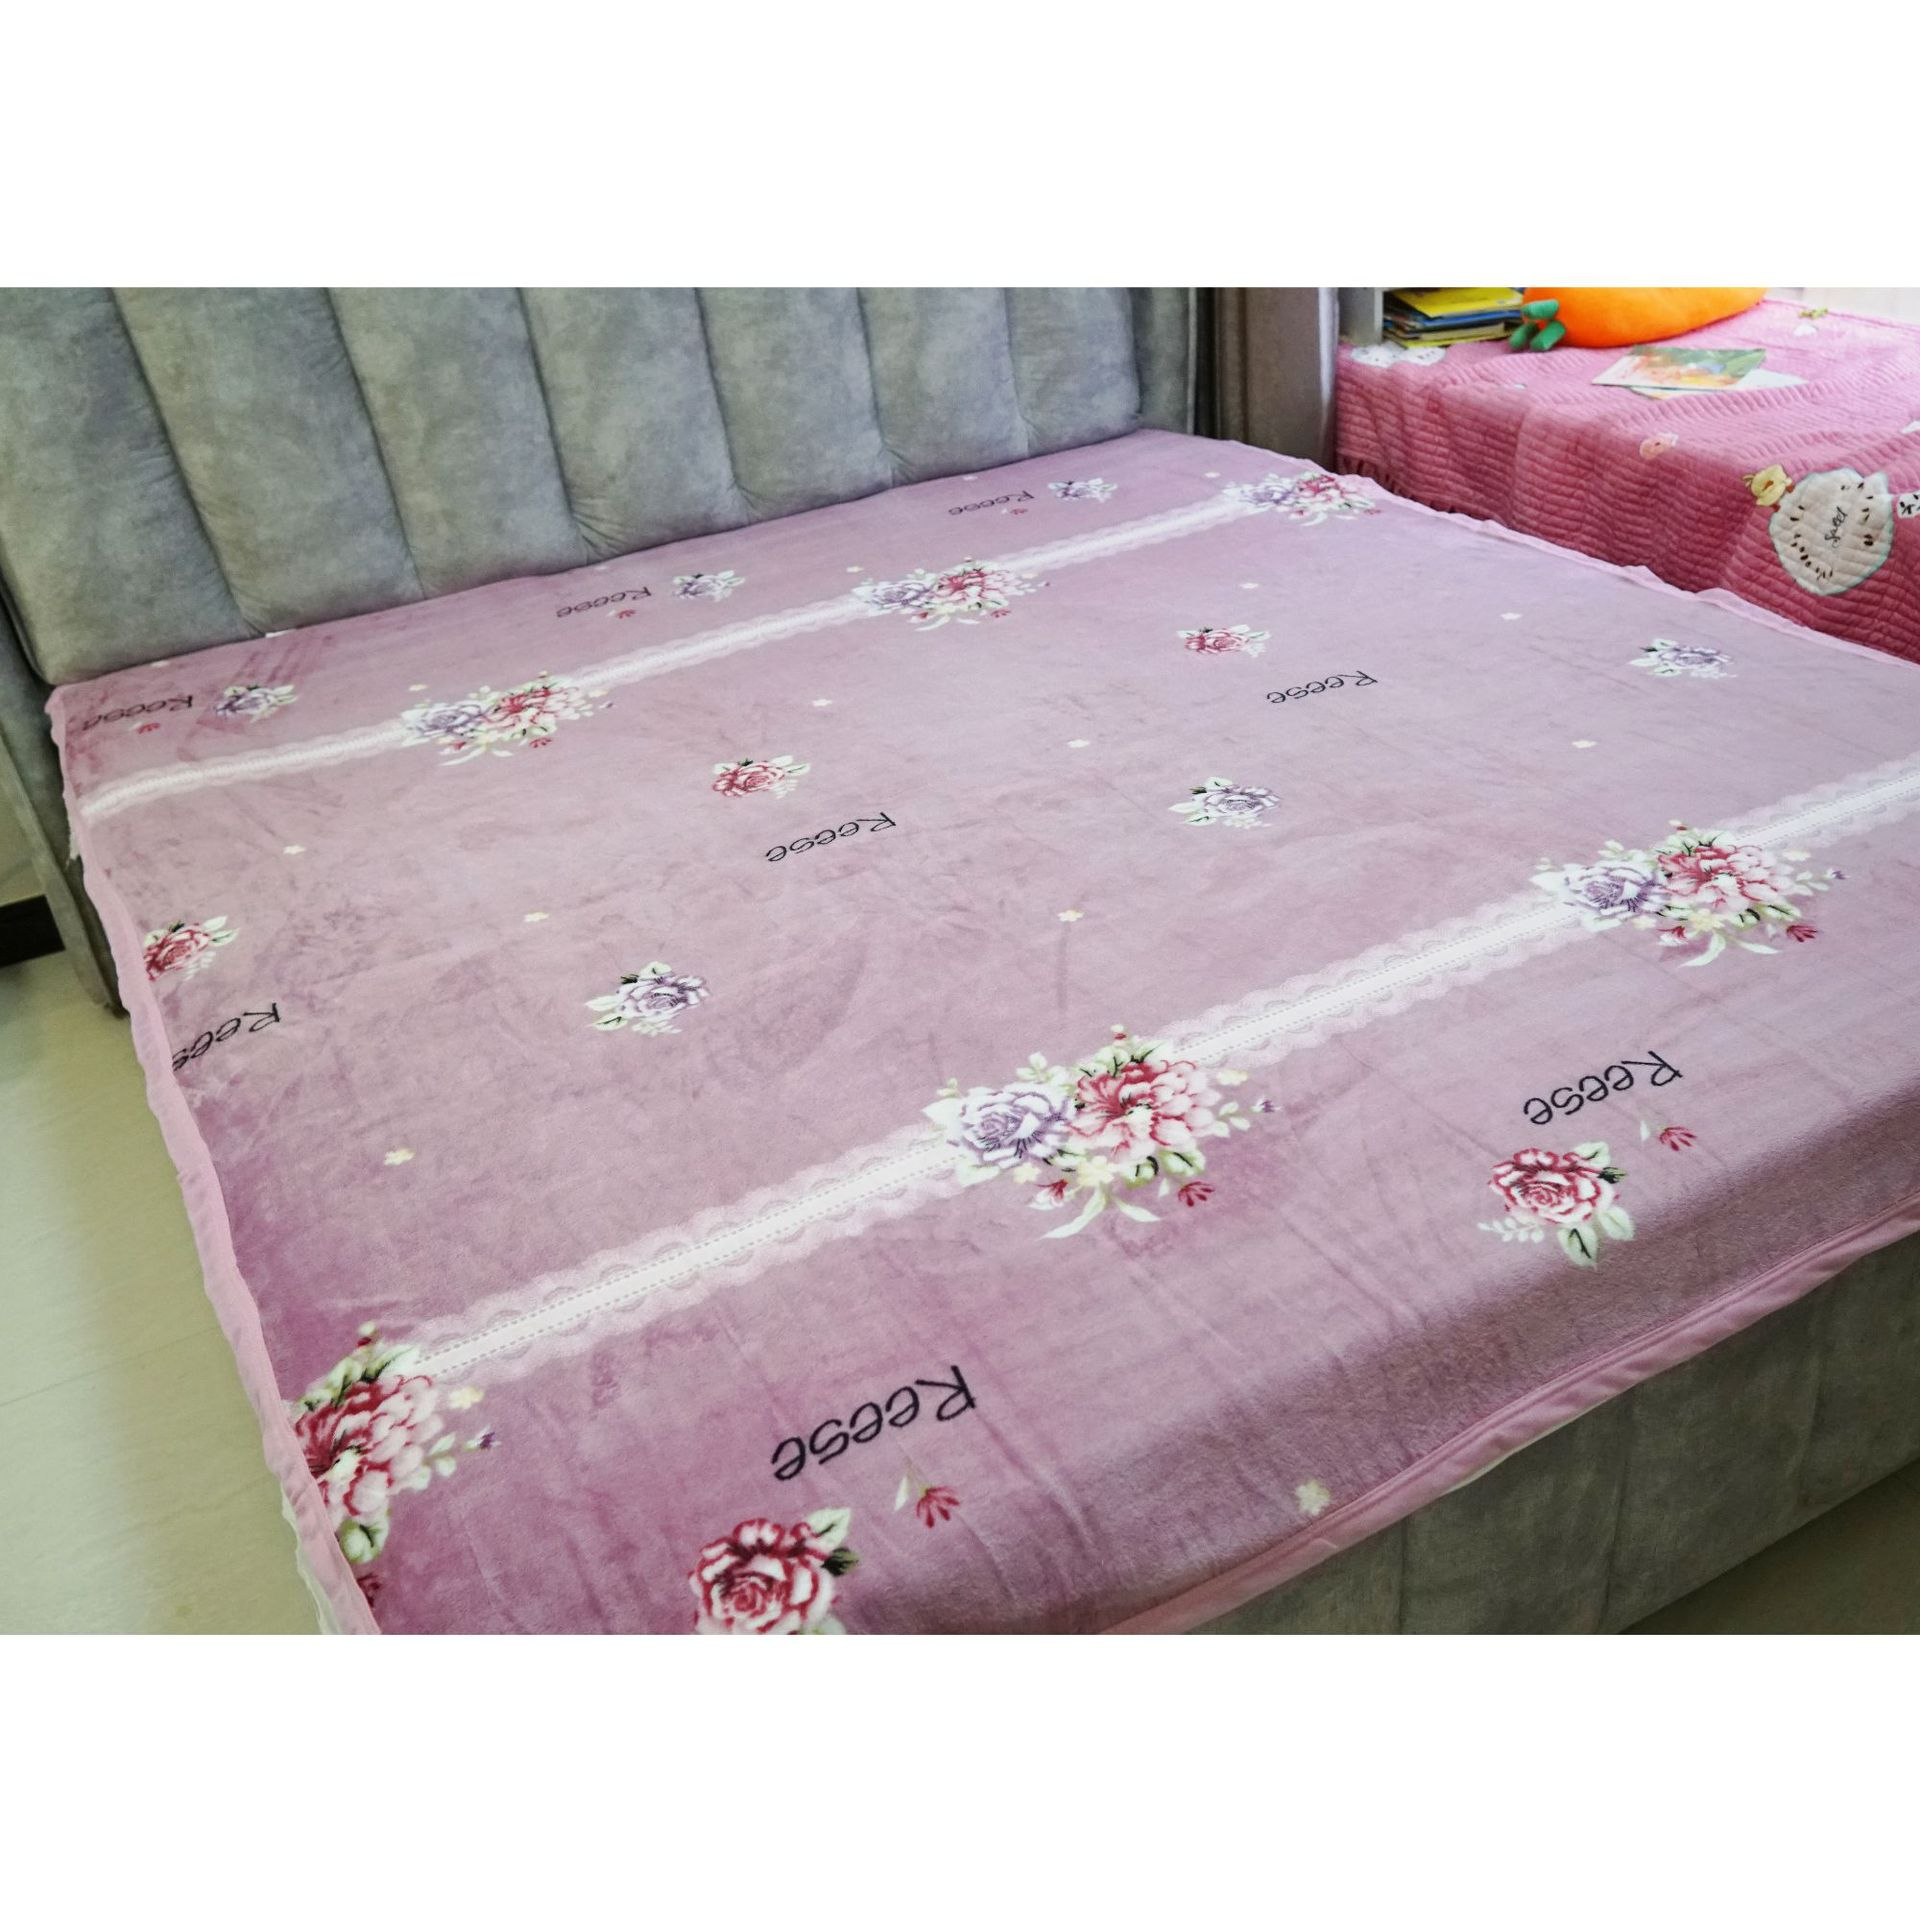 Narby Printed Warm Blanket